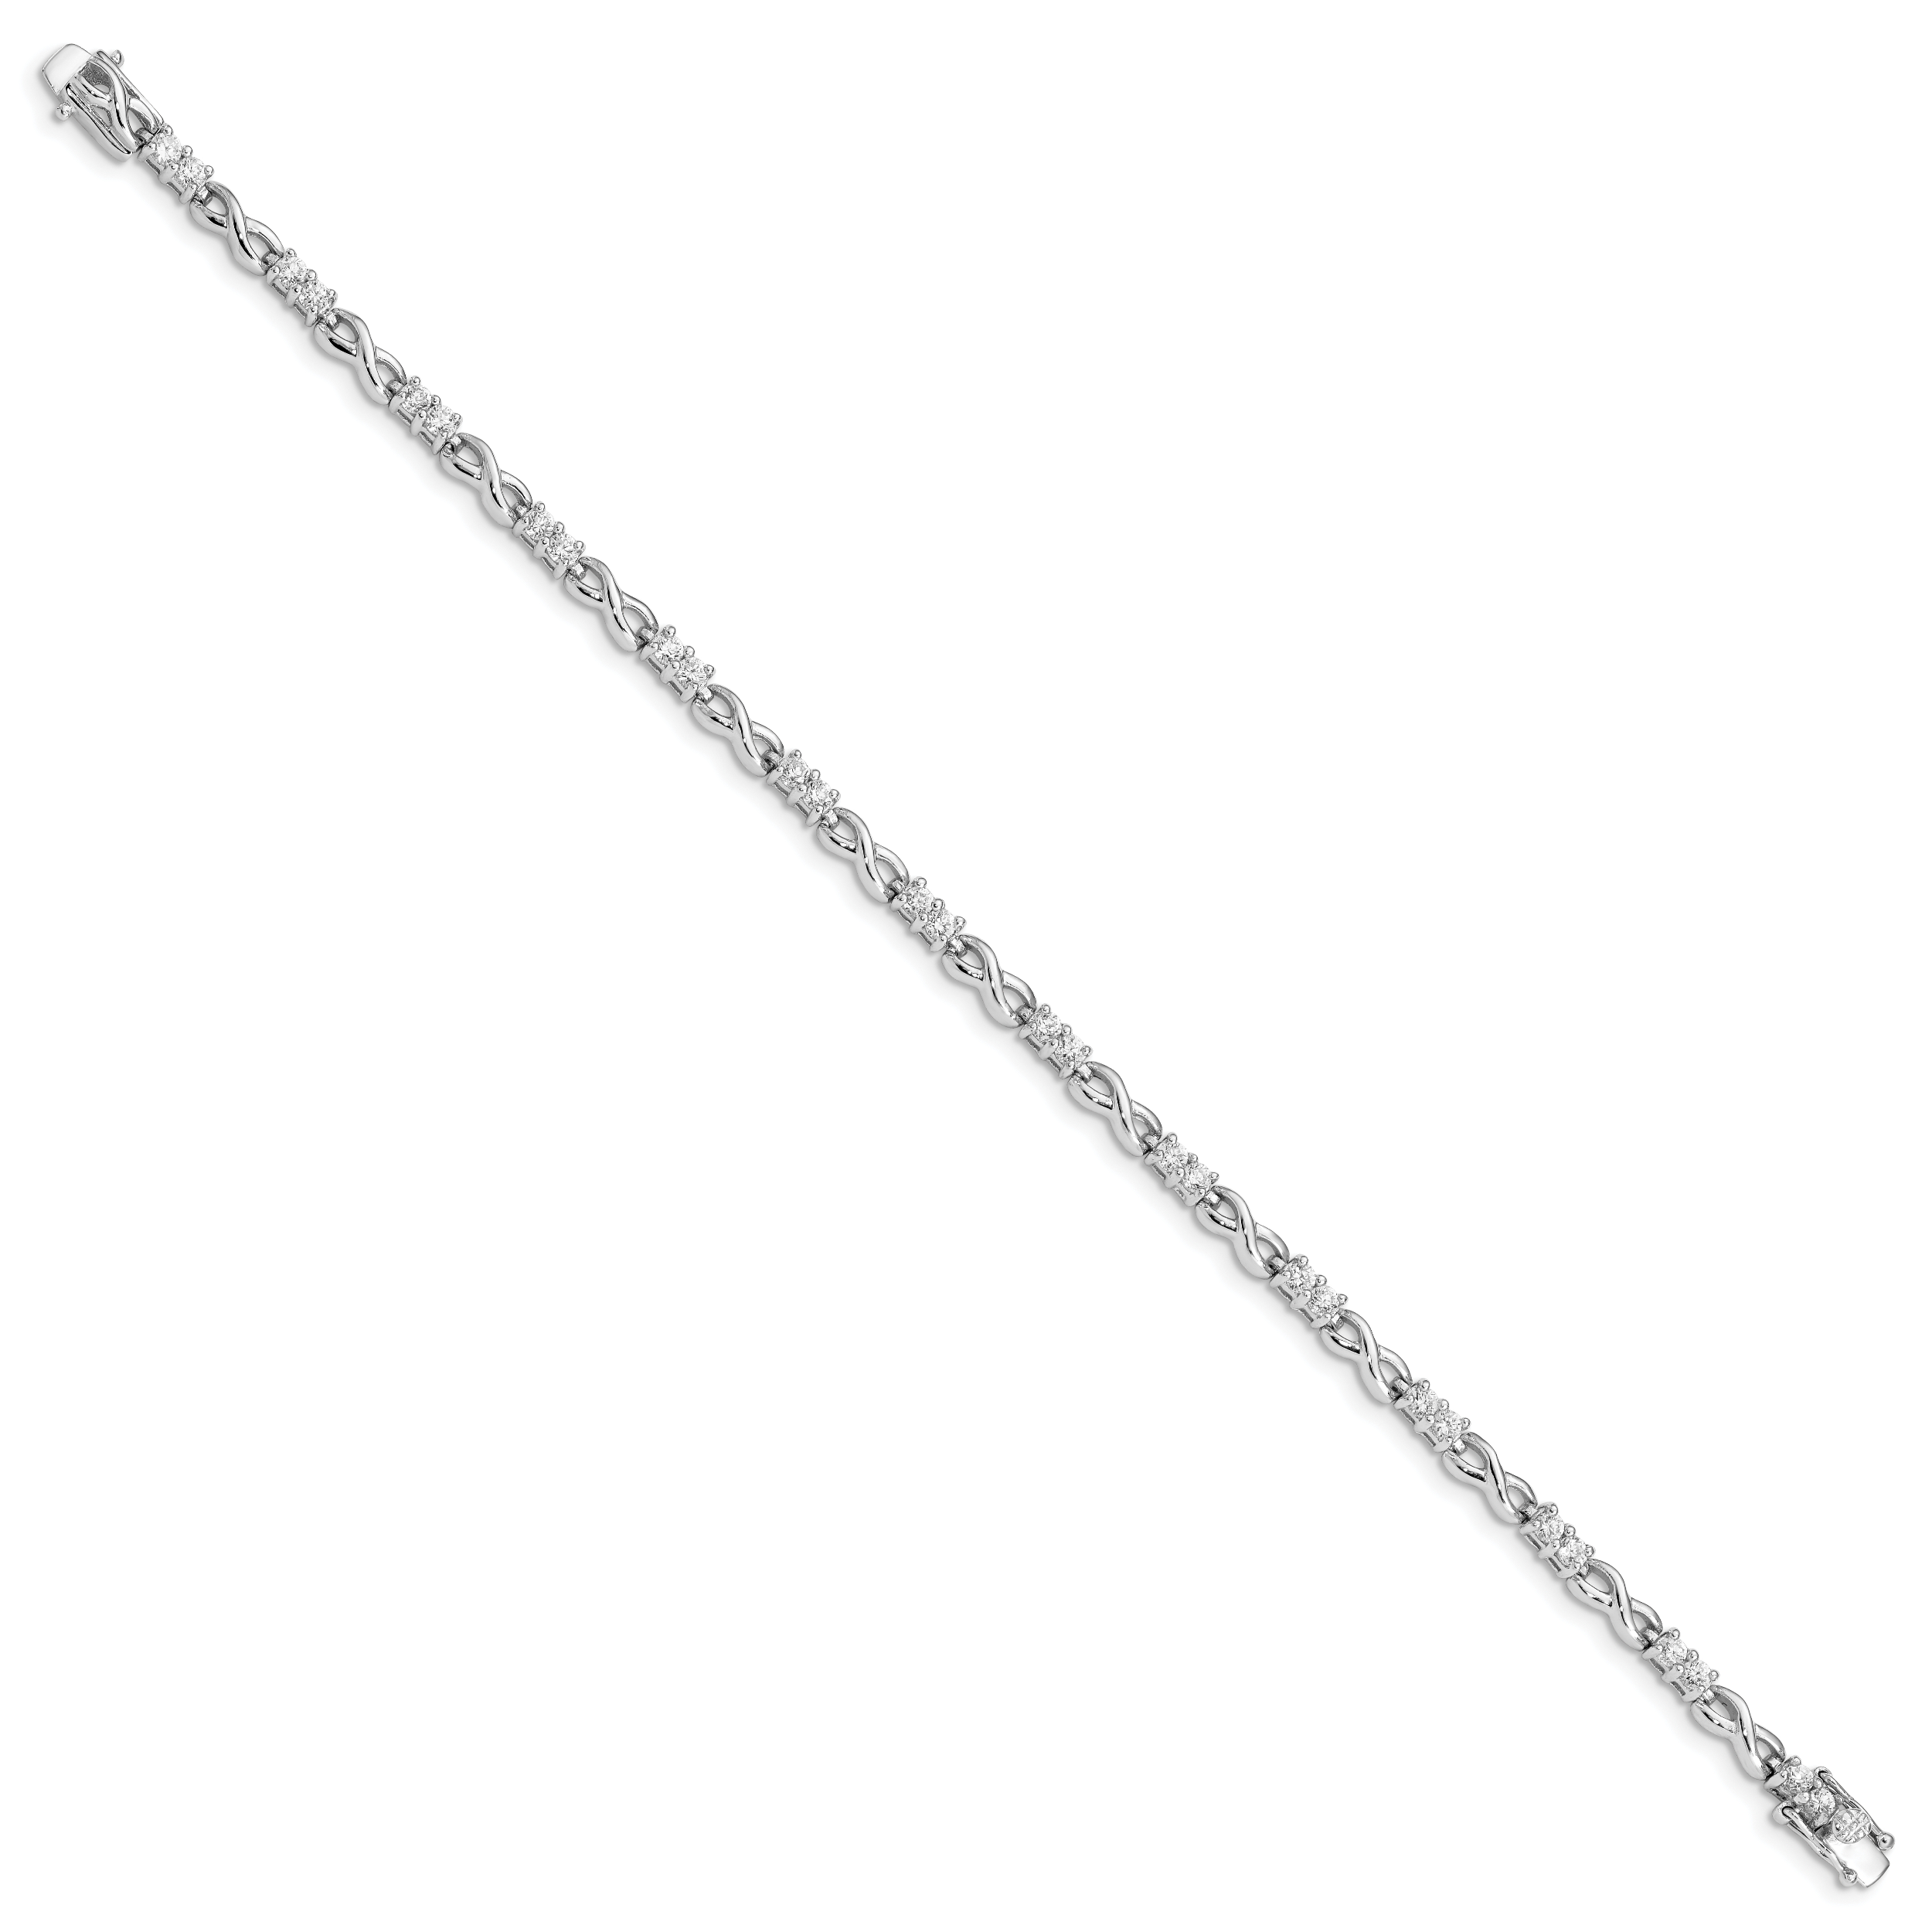 925 Sterling Silver Seven Strand Beaded Bracelet 7.5 Inch Mothers Day Gifts